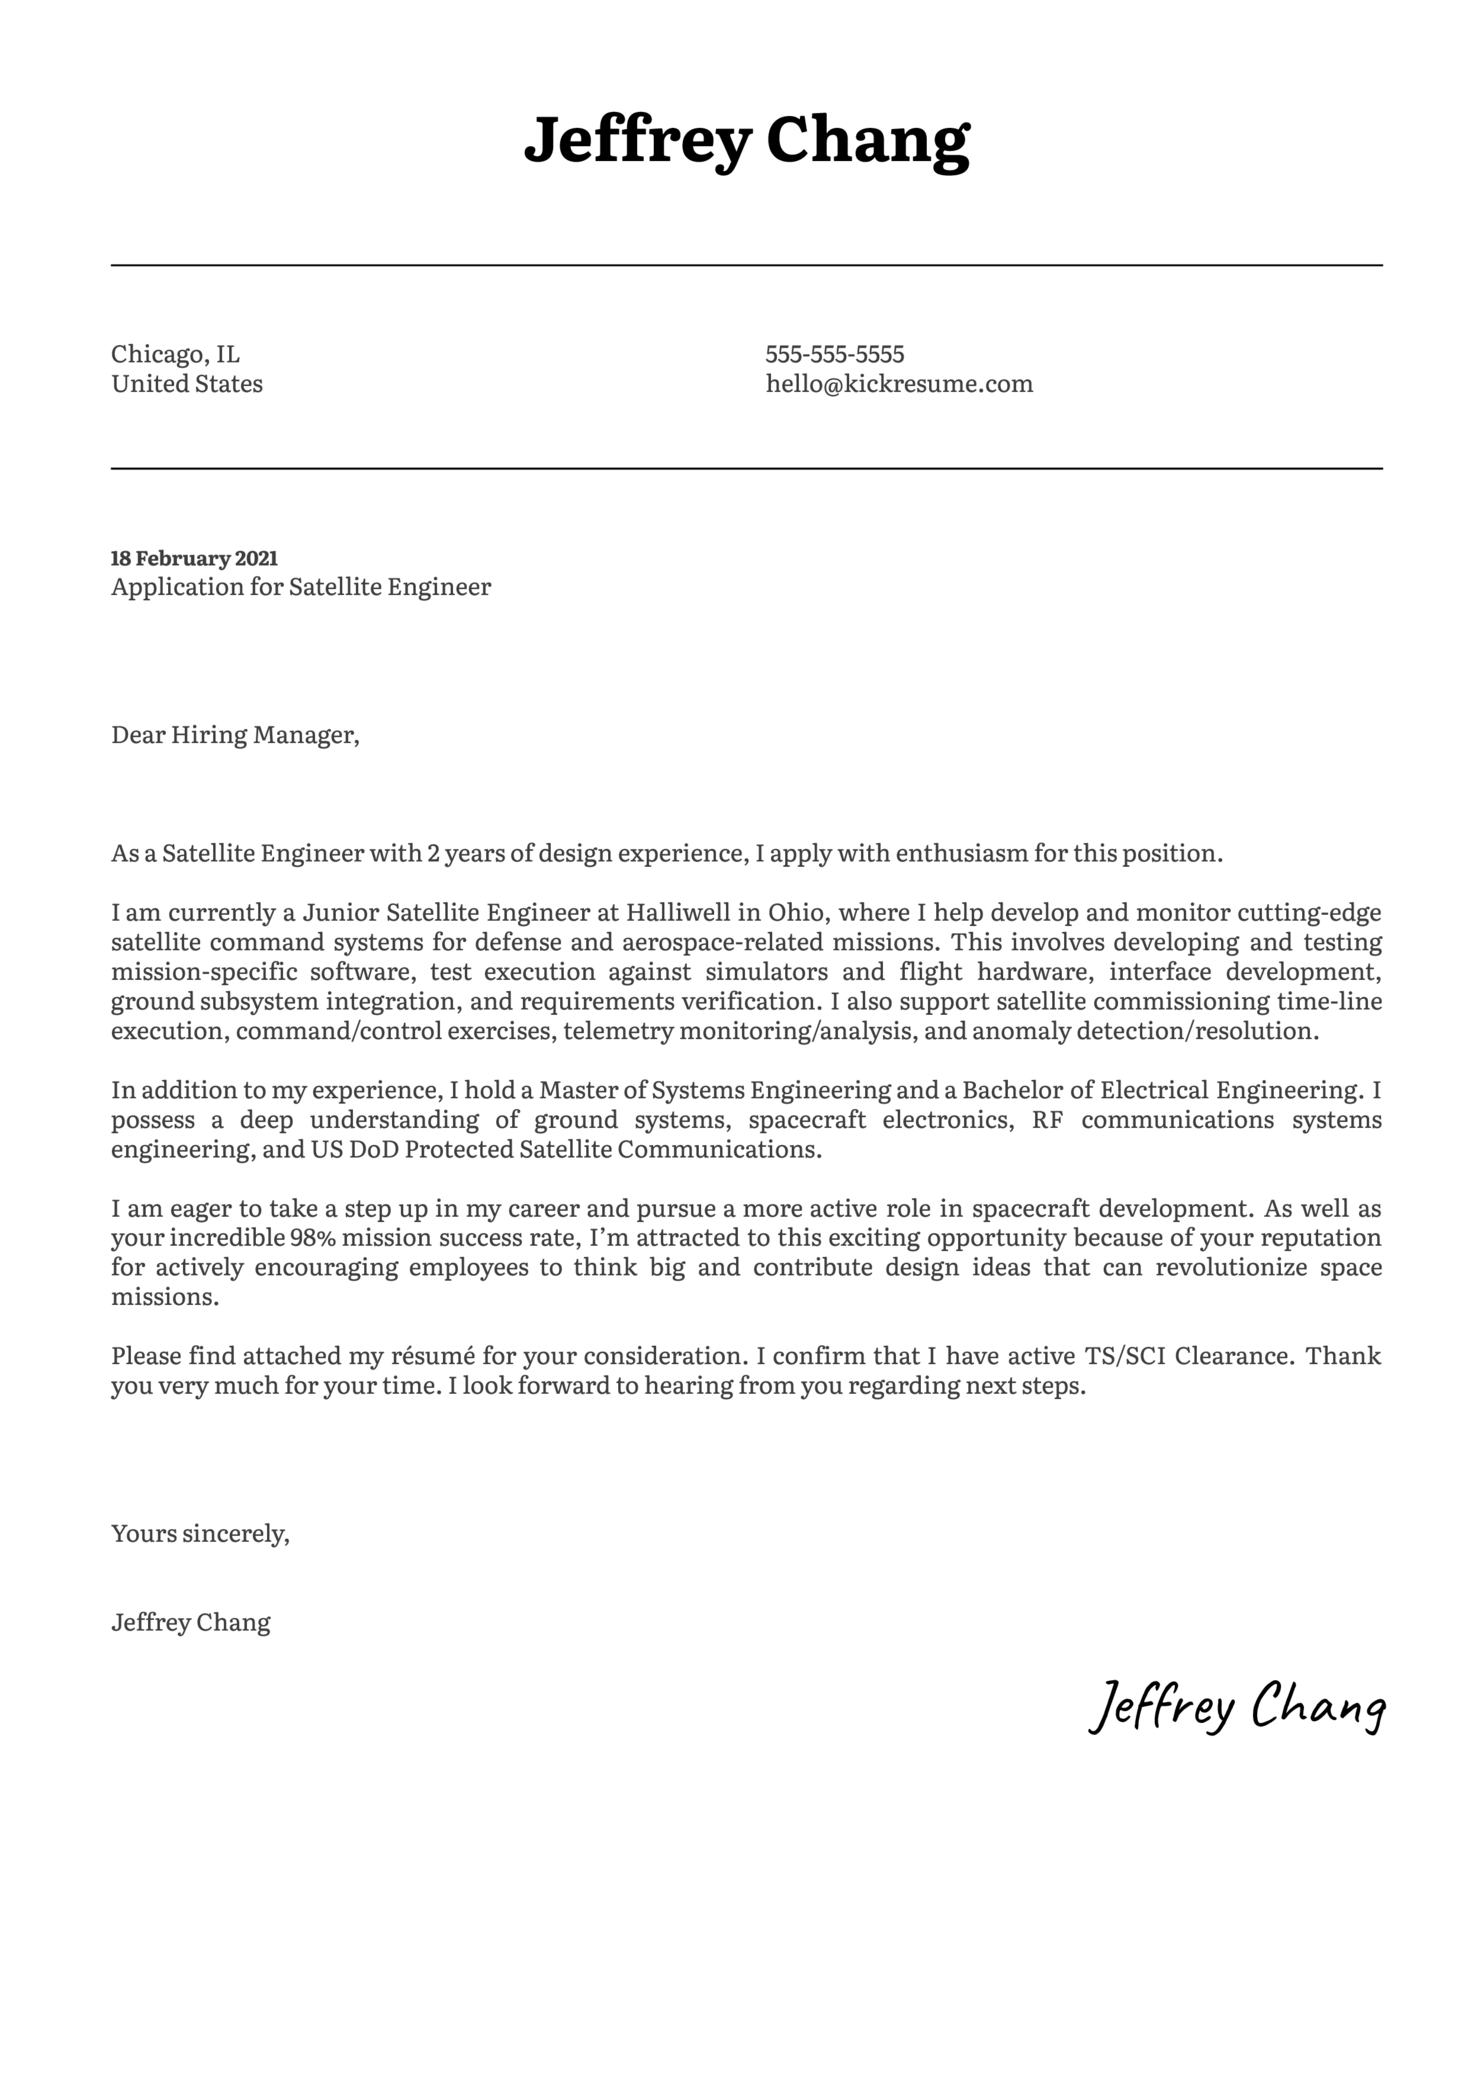 Satellite Engineer Cover Letter Example